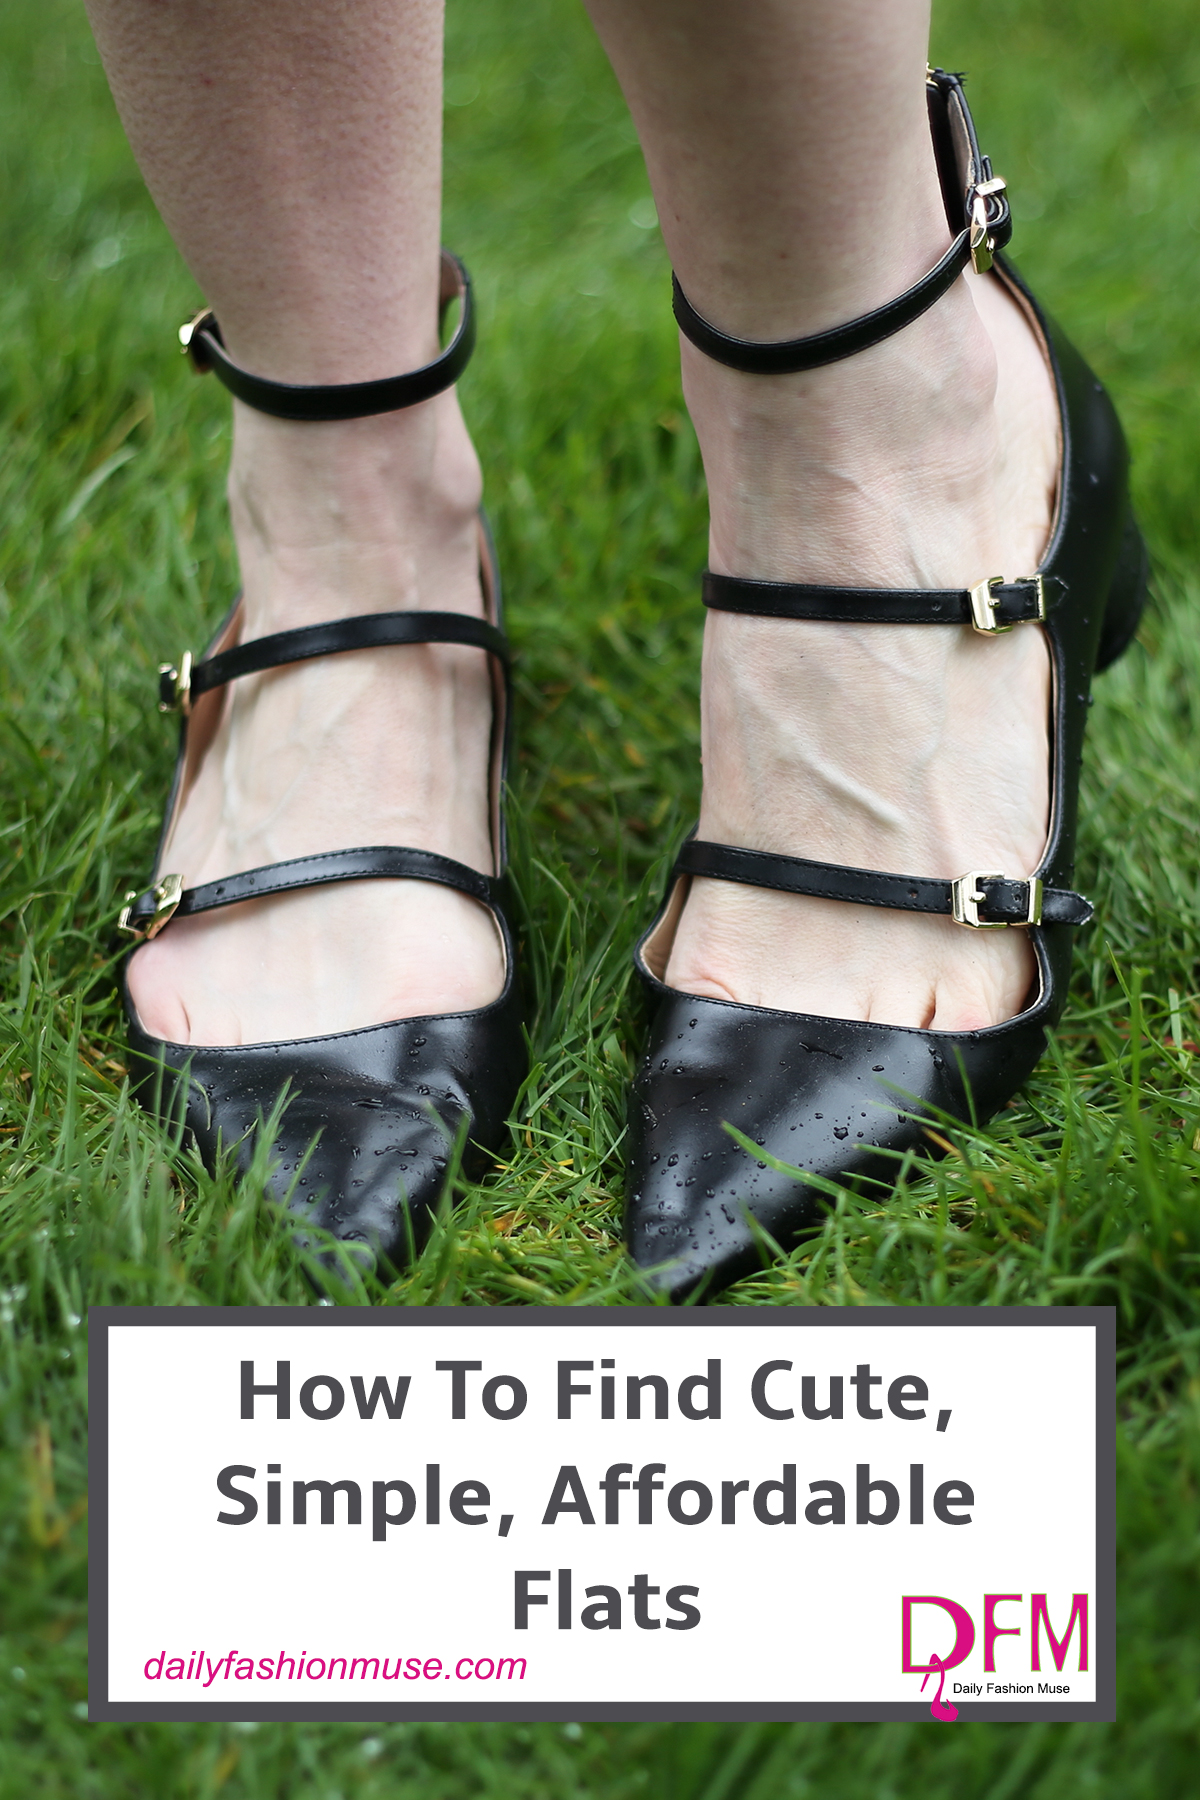 Cute, simple, affordable flats are one of the most challenging items out there for me to locate. Click to read some strategies for finding the perfect pair.